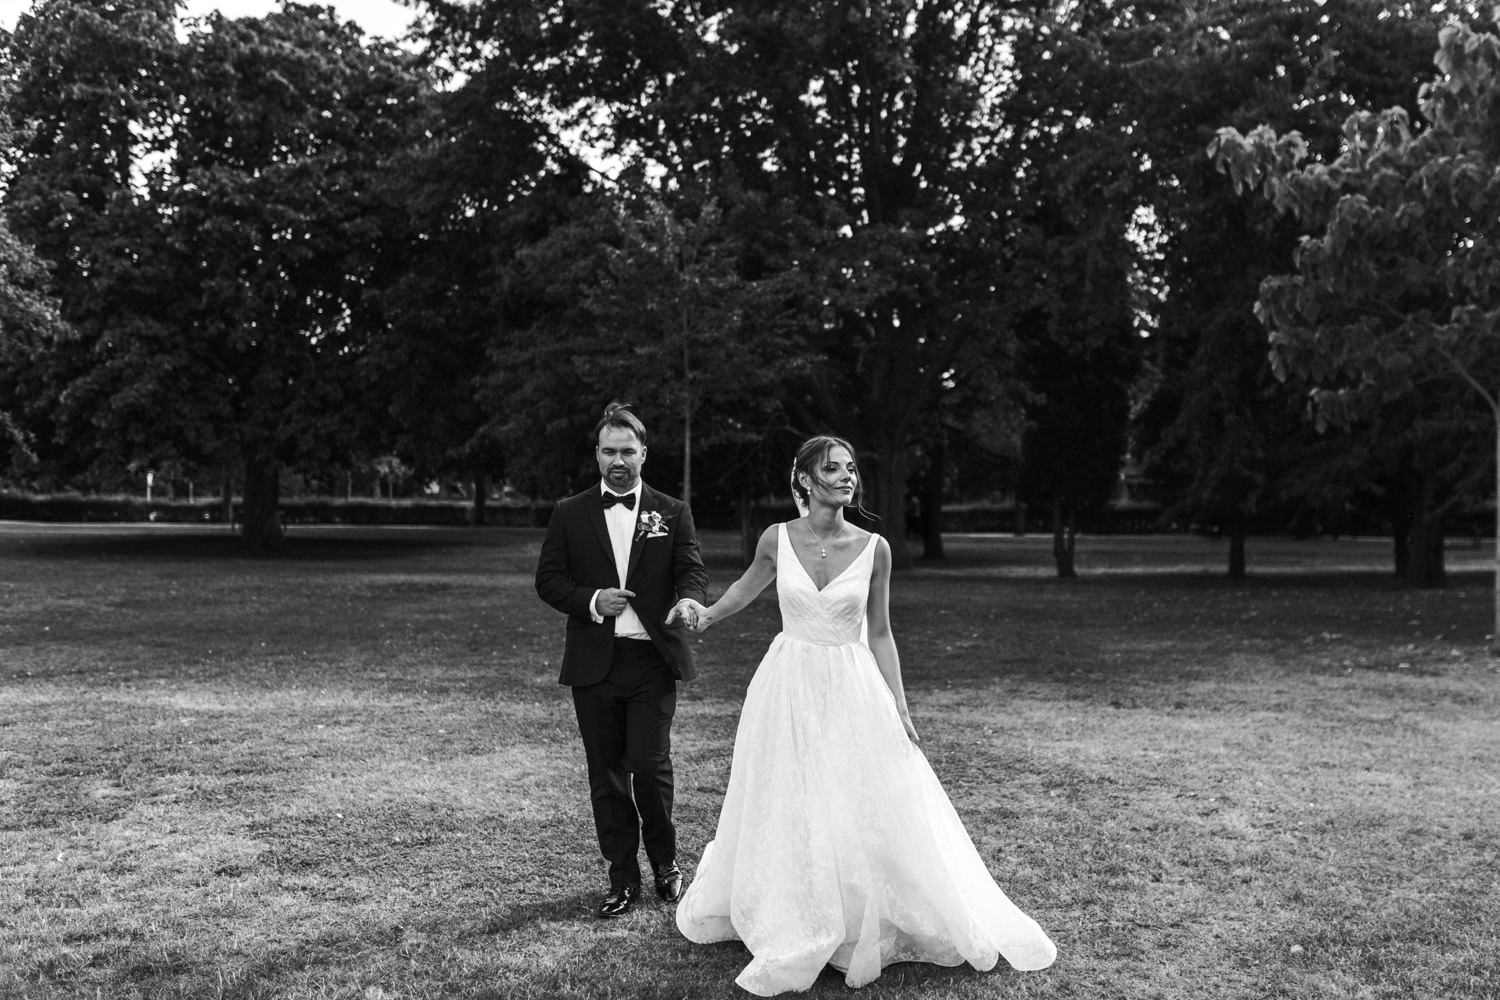 black and white image of bride and groom walking holding hands during their wedding portraits